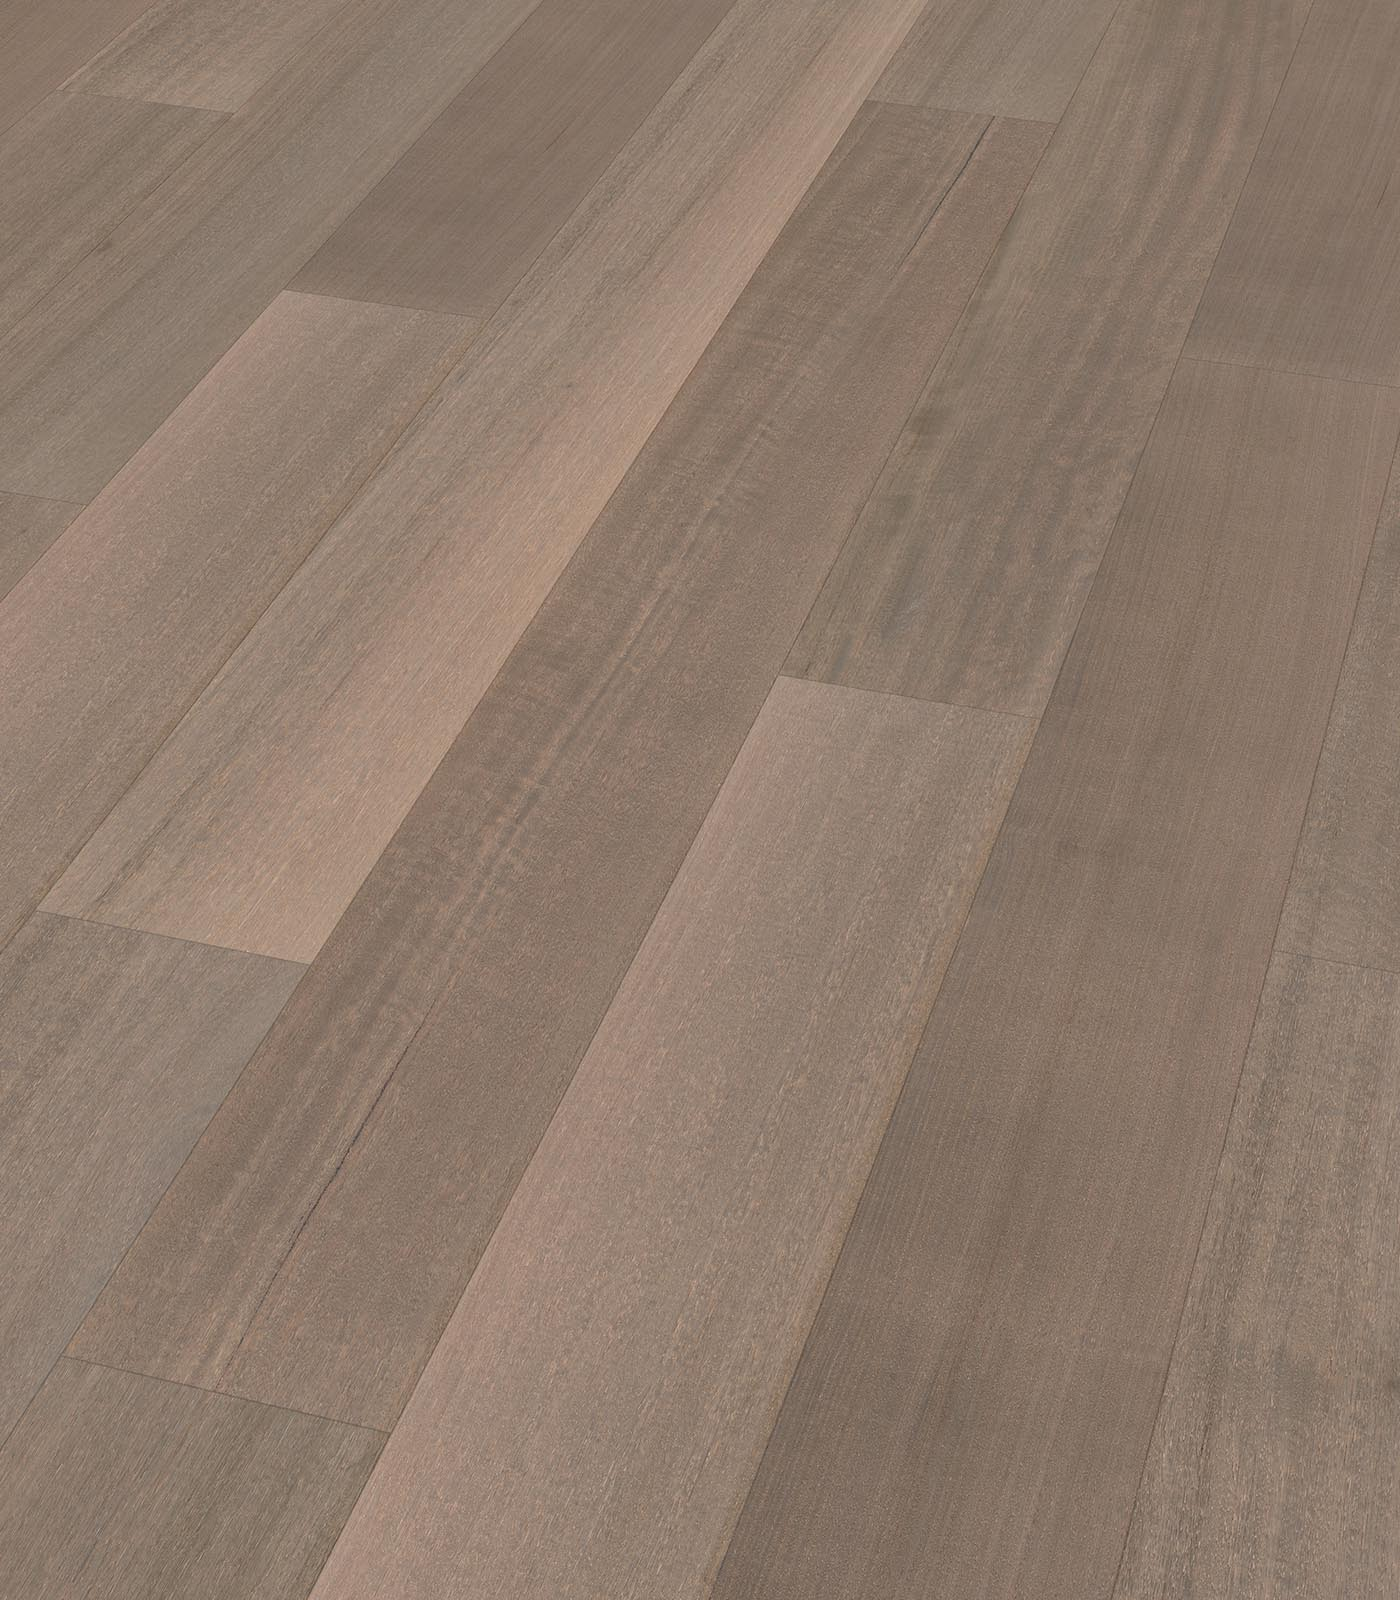 Gold Coast-Flooring in engineered Tasmanian Oak